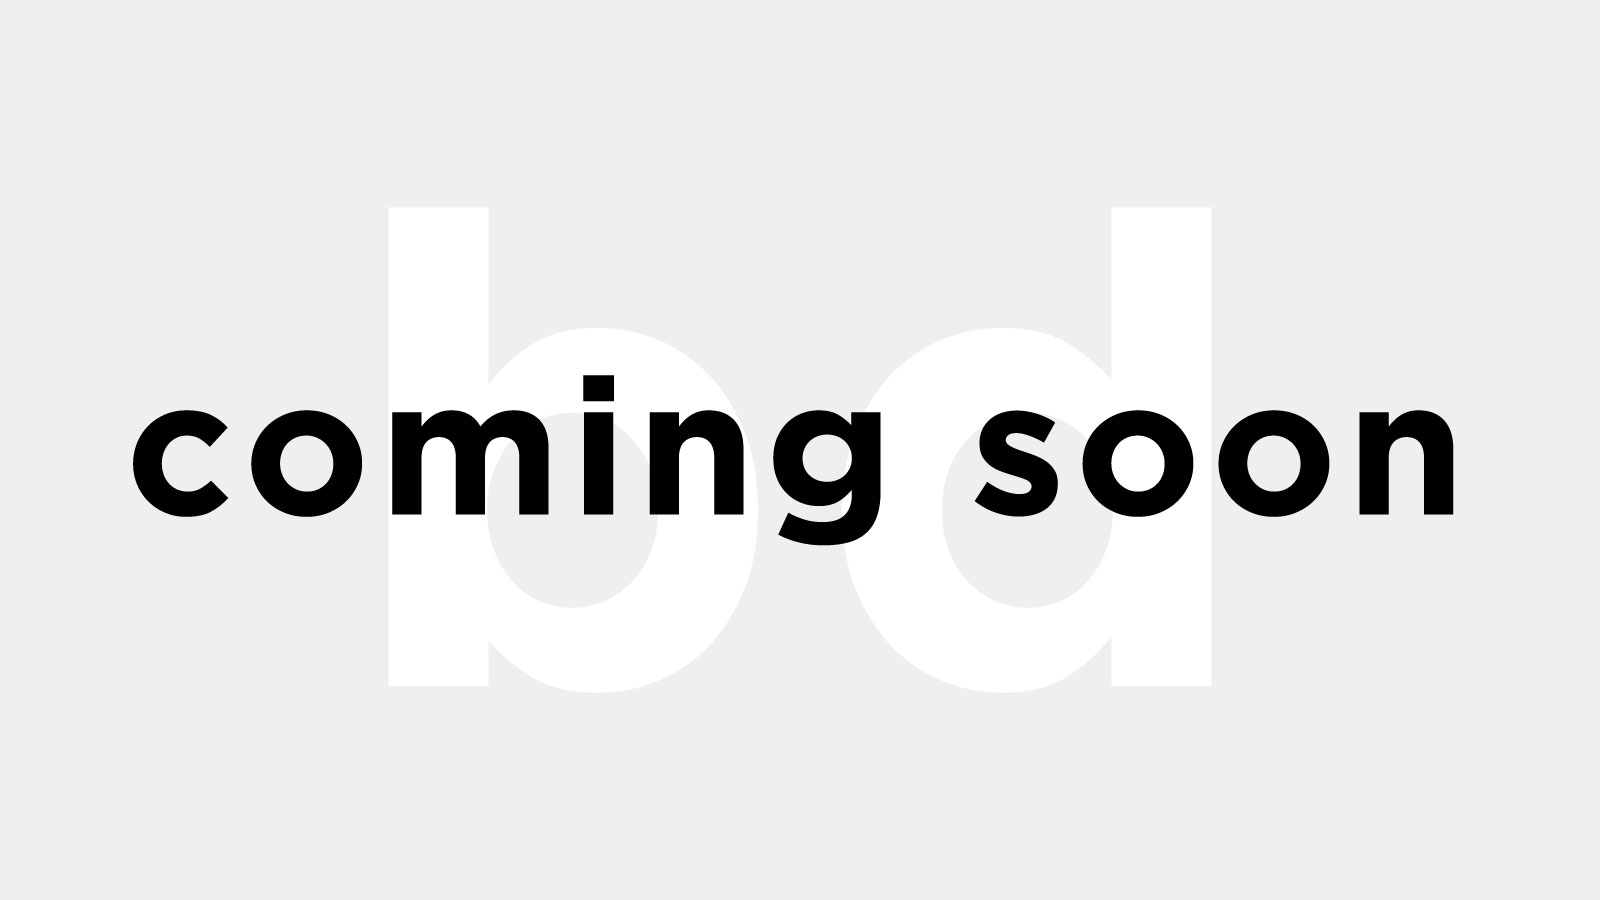 ecommerce store buildout and strategy - blokdigi is working alongside the farm to create an online store that sells original herbs and creative merchandising that aligns with their brand and unique events. The store is set to go live in the 2nd quarter of 2019.